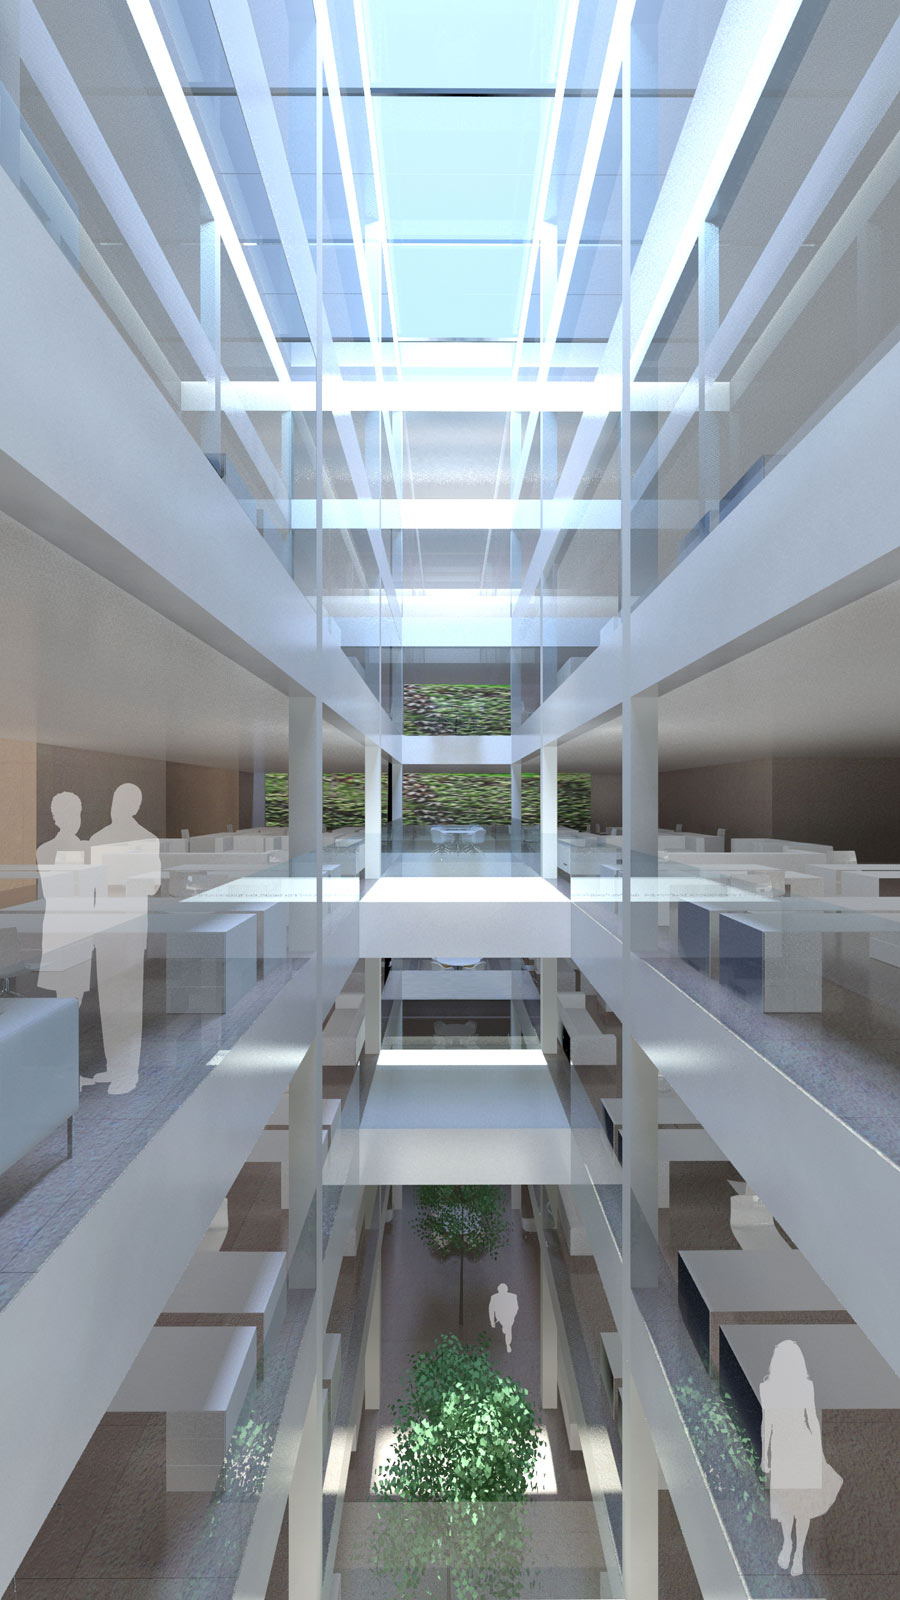 Victoria Embankment Atrium Massing by Marks Barfield Architects